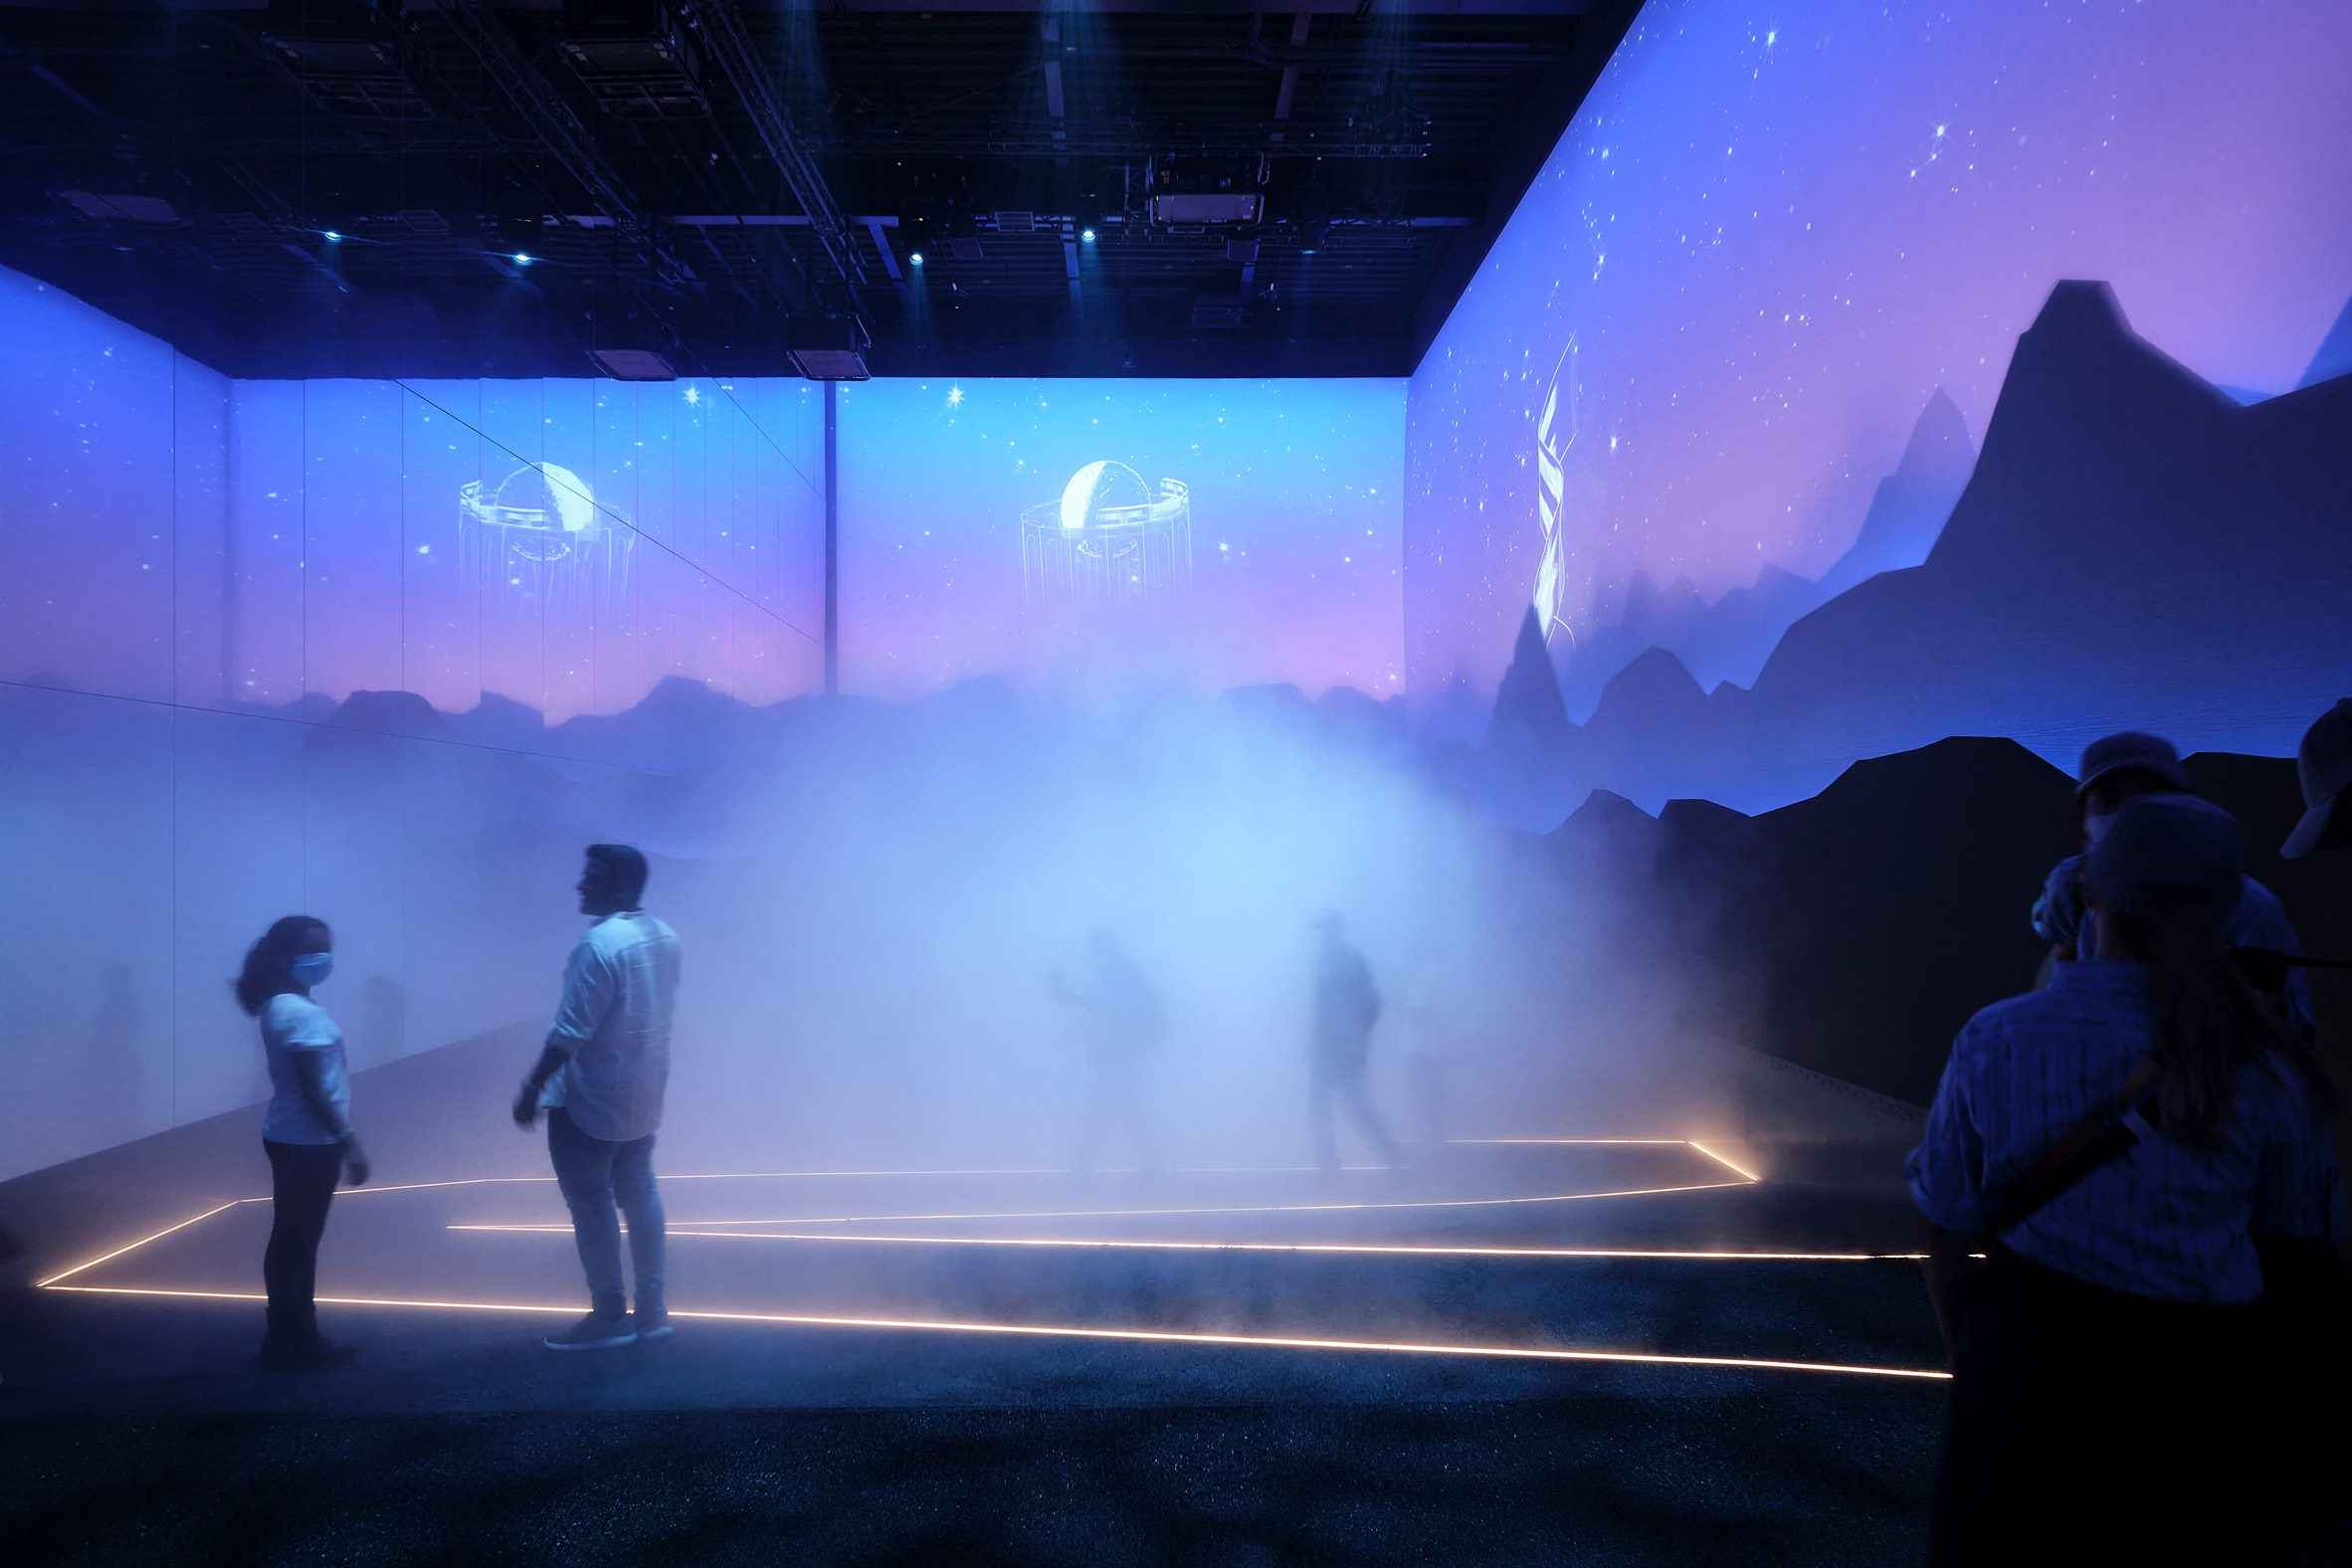 Fog-filled visitor attraction